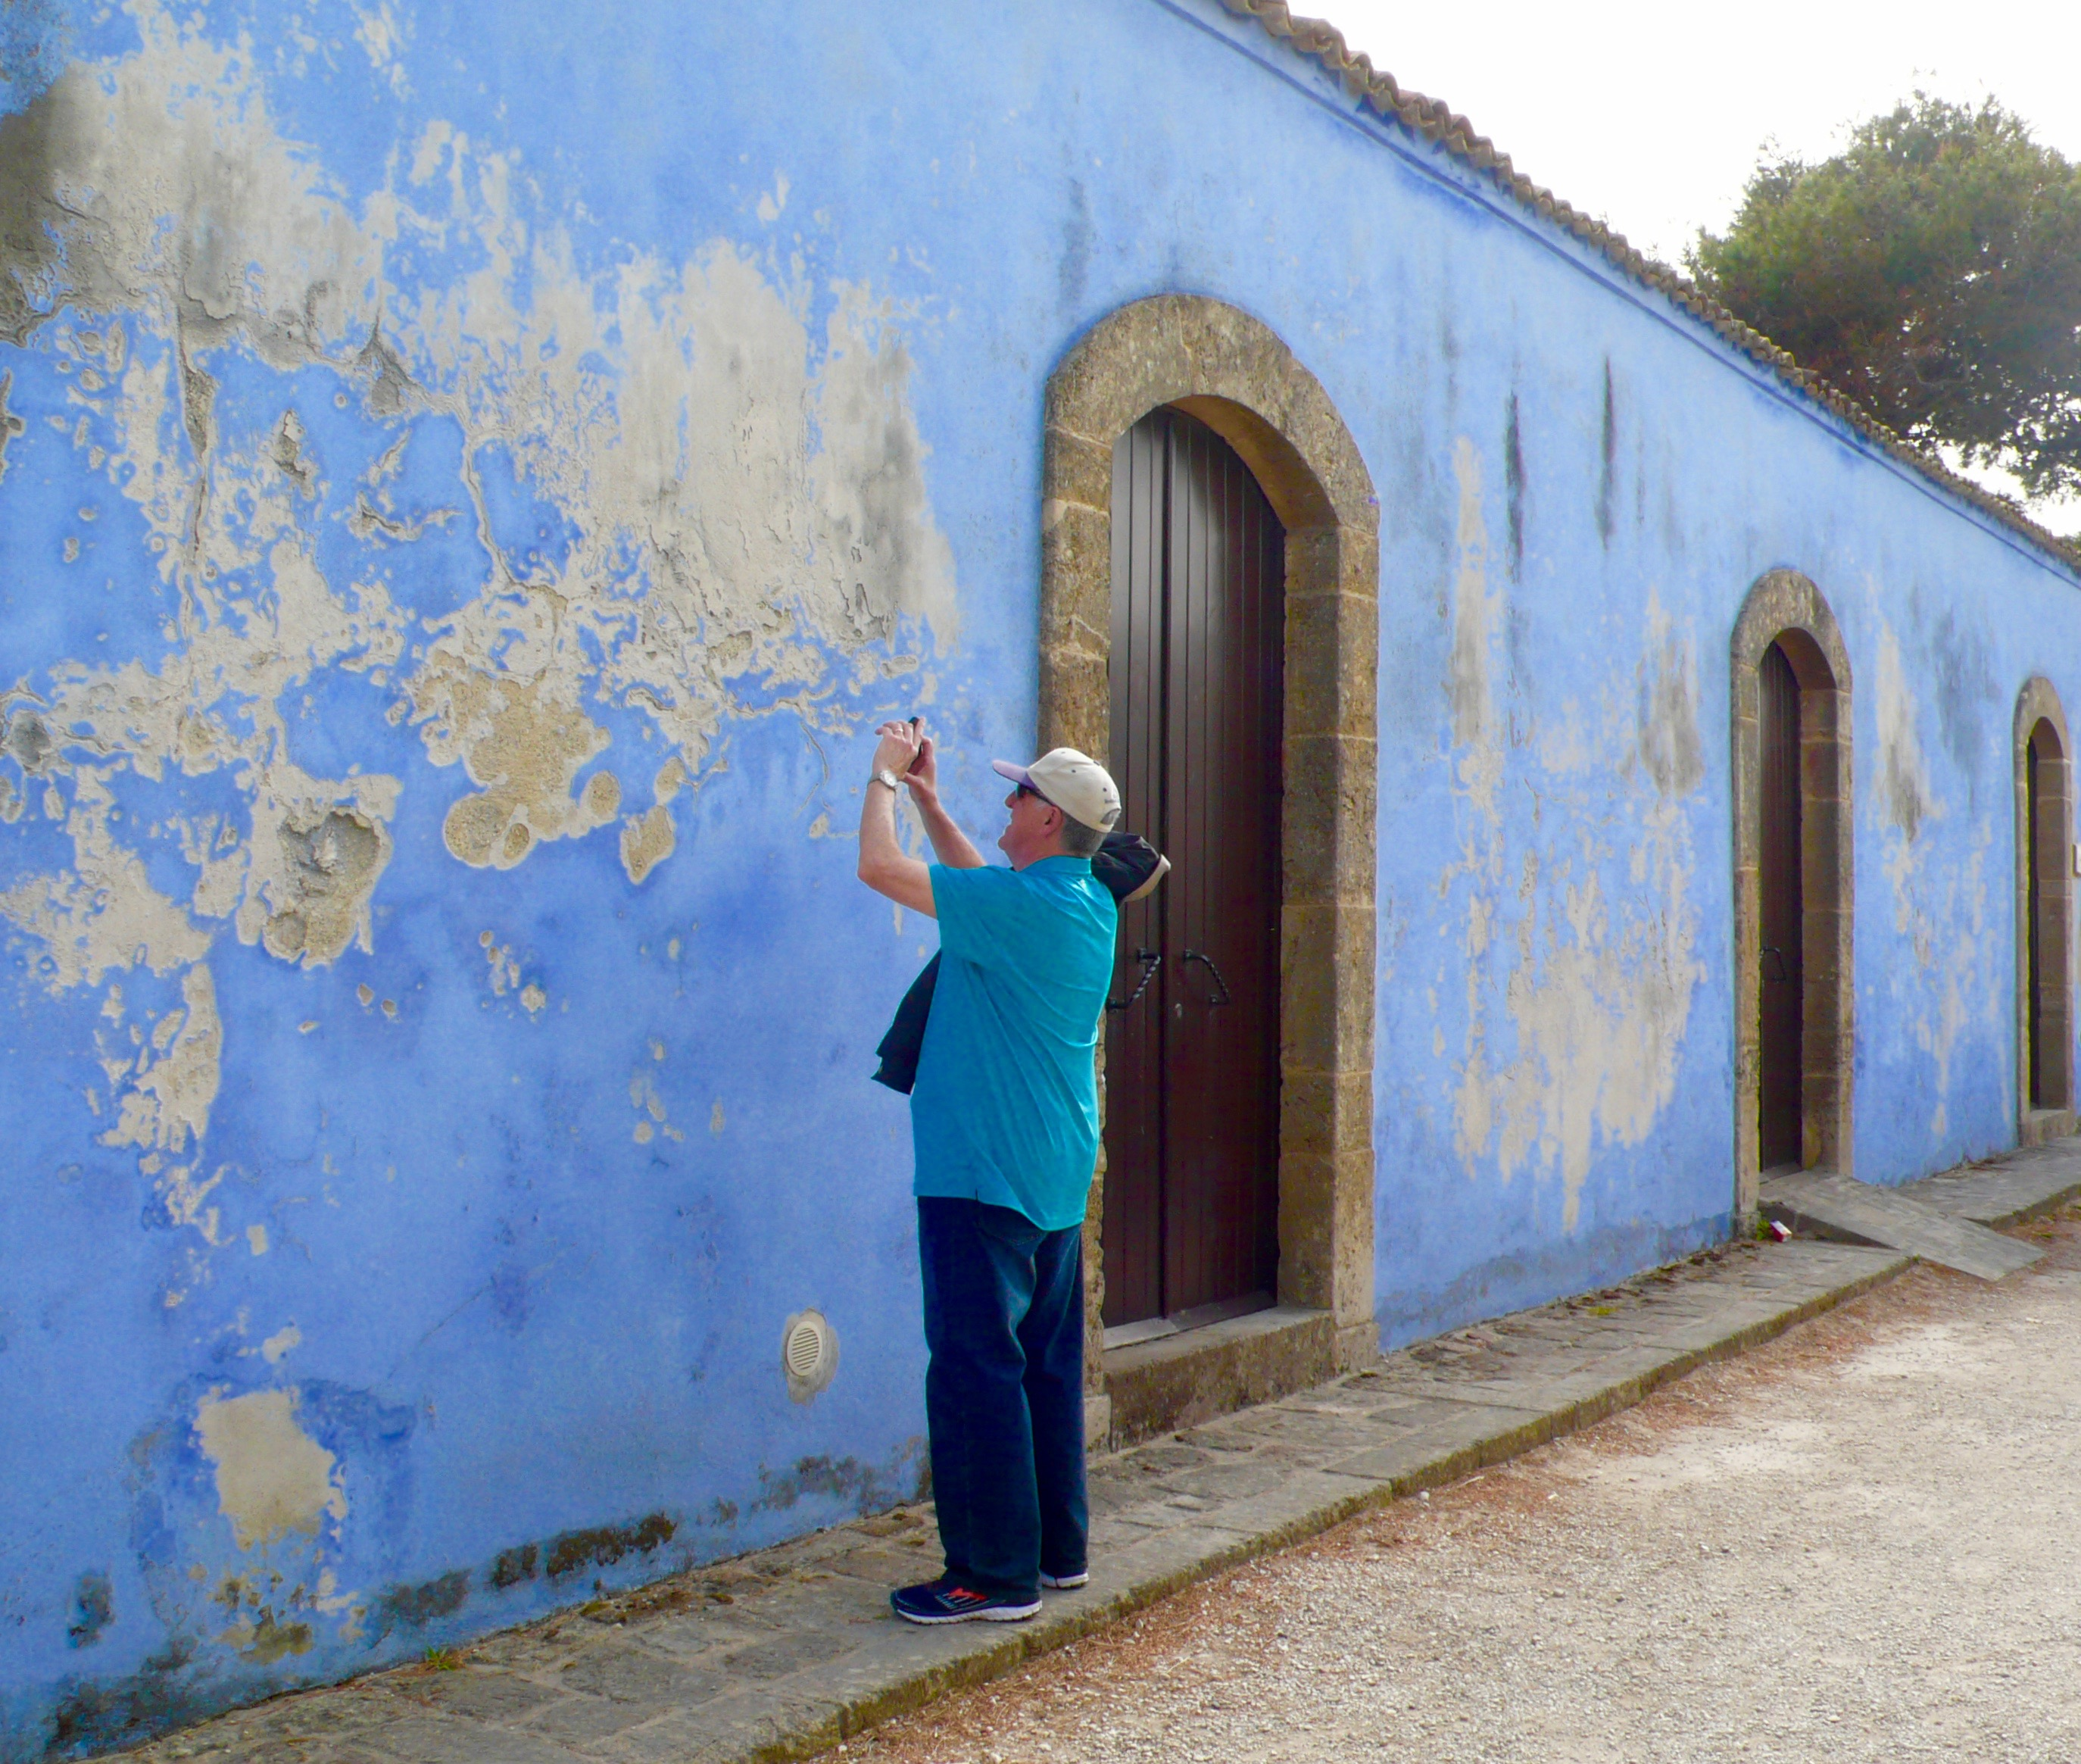 My artistic brother-in-law photographing the blue walled house